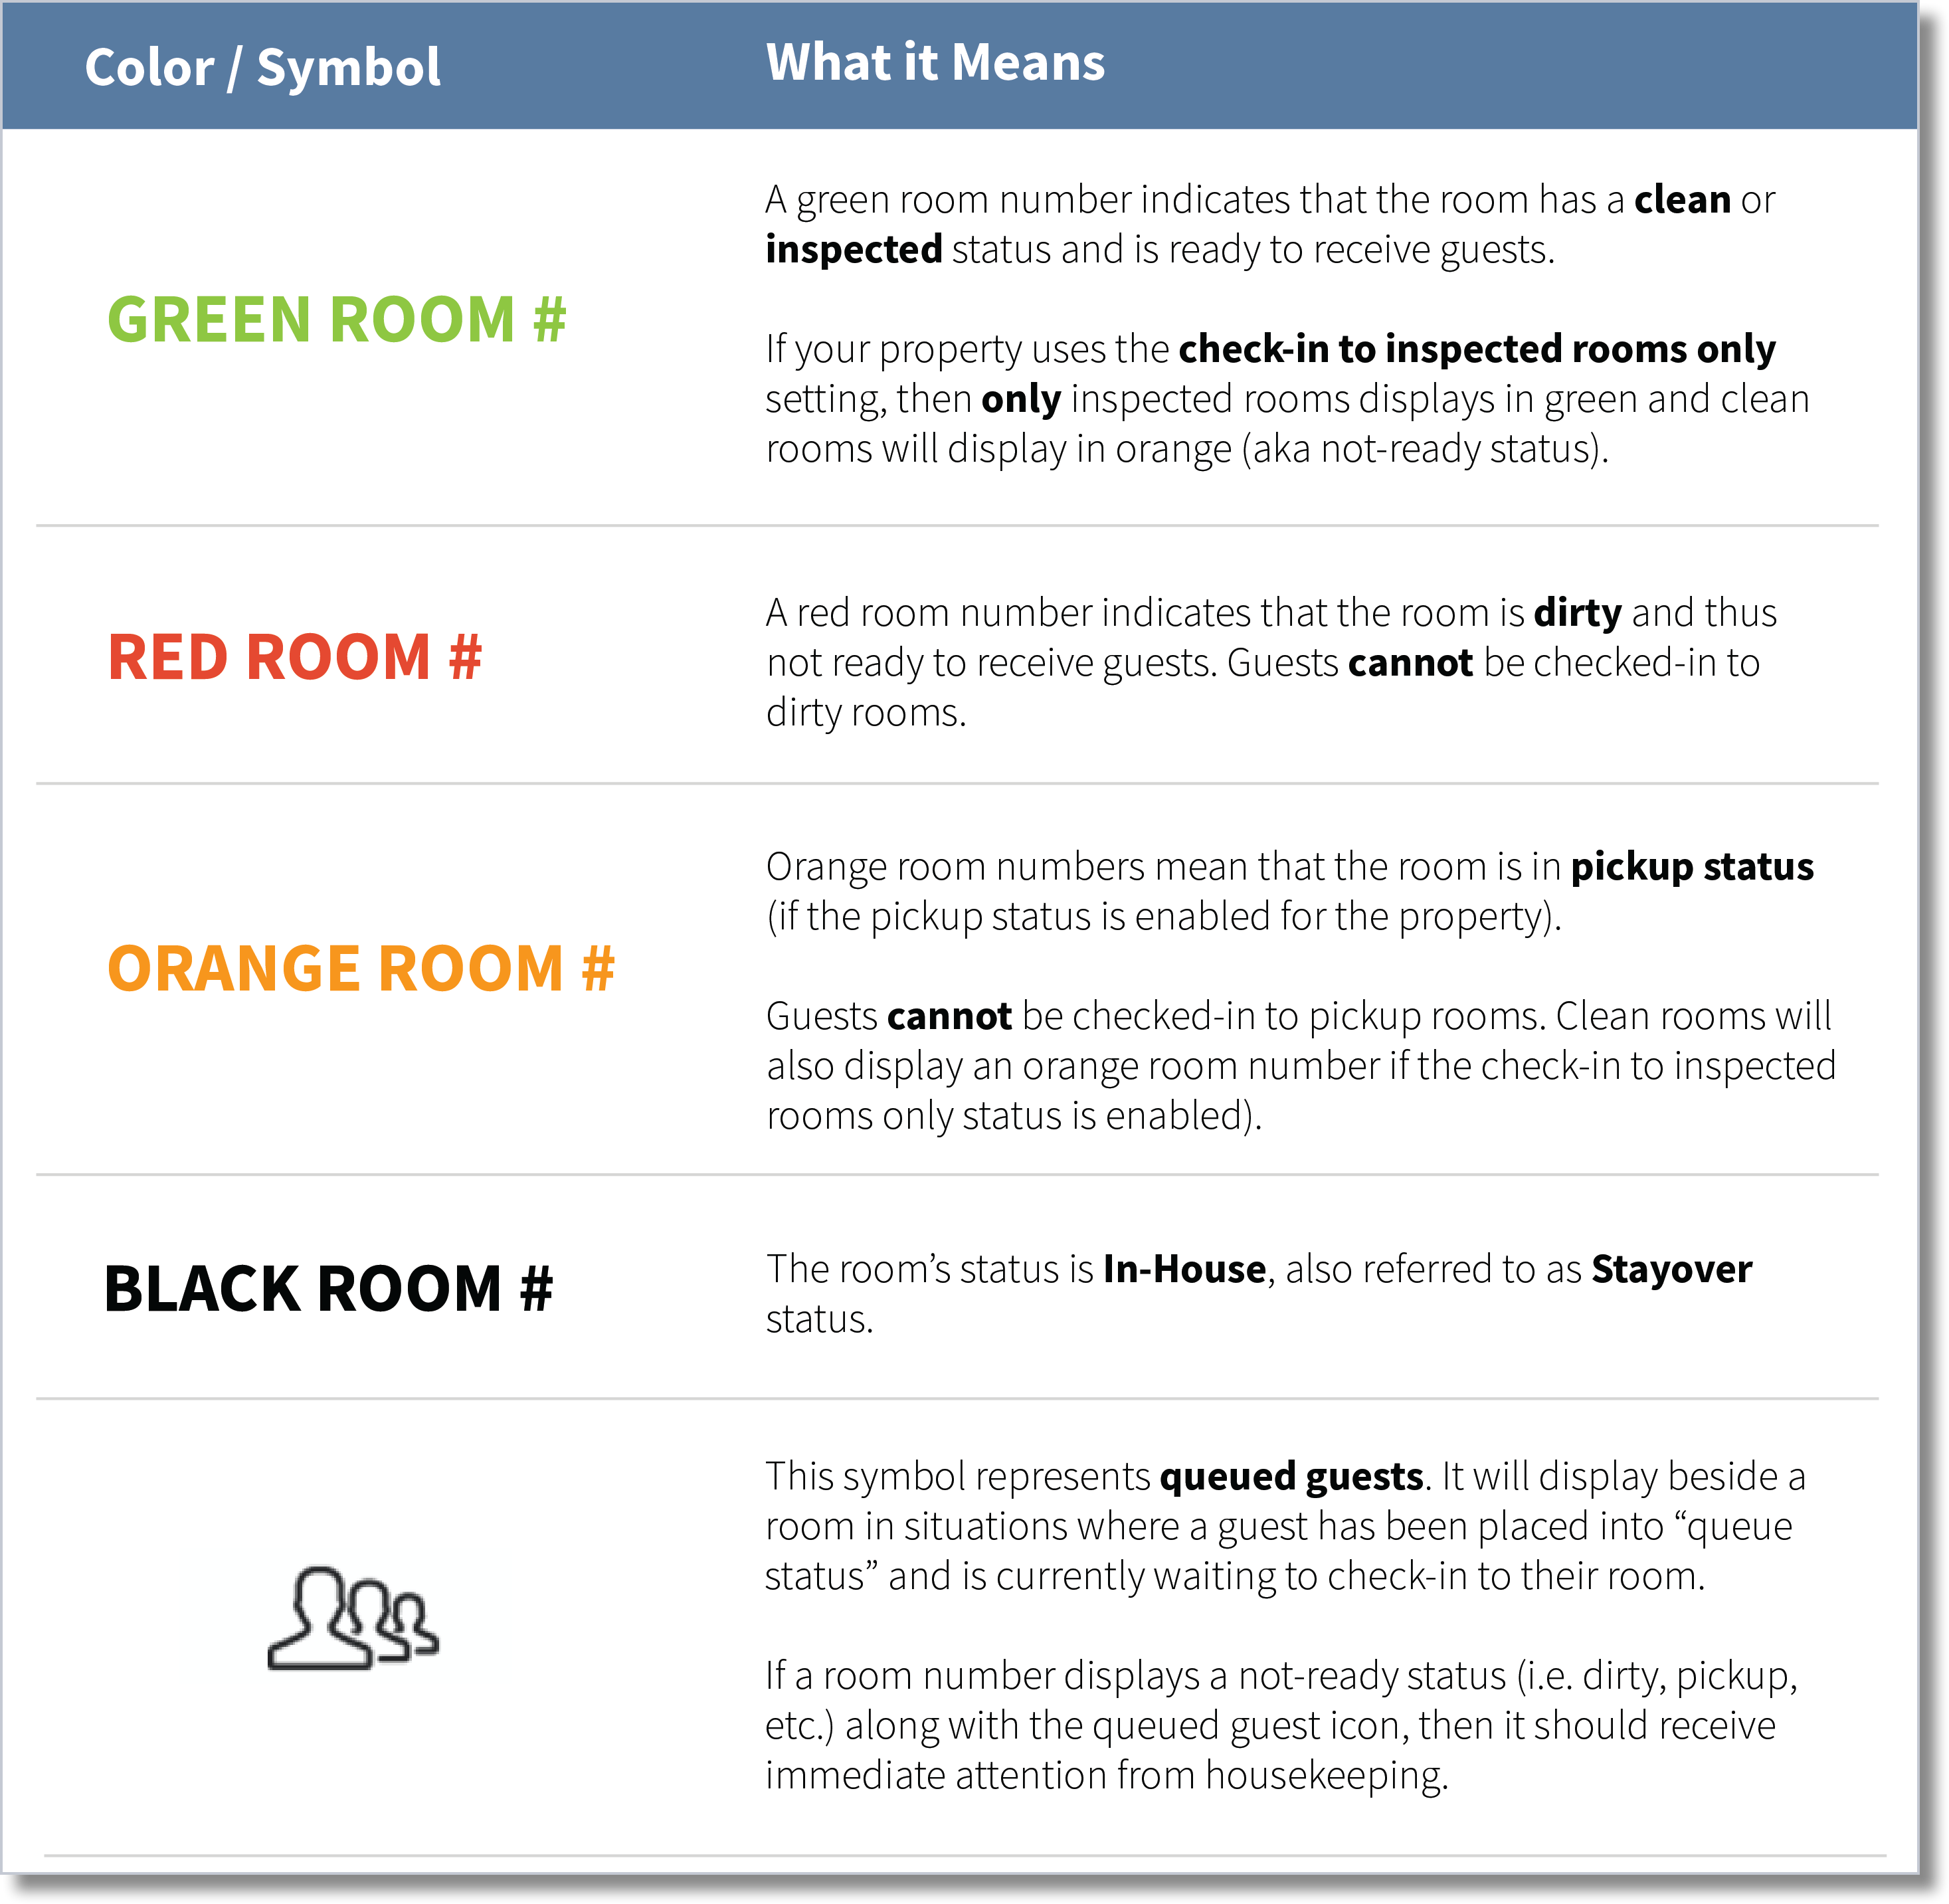 Overview of Symbols, Colors & Icons, Dashboards and List Views